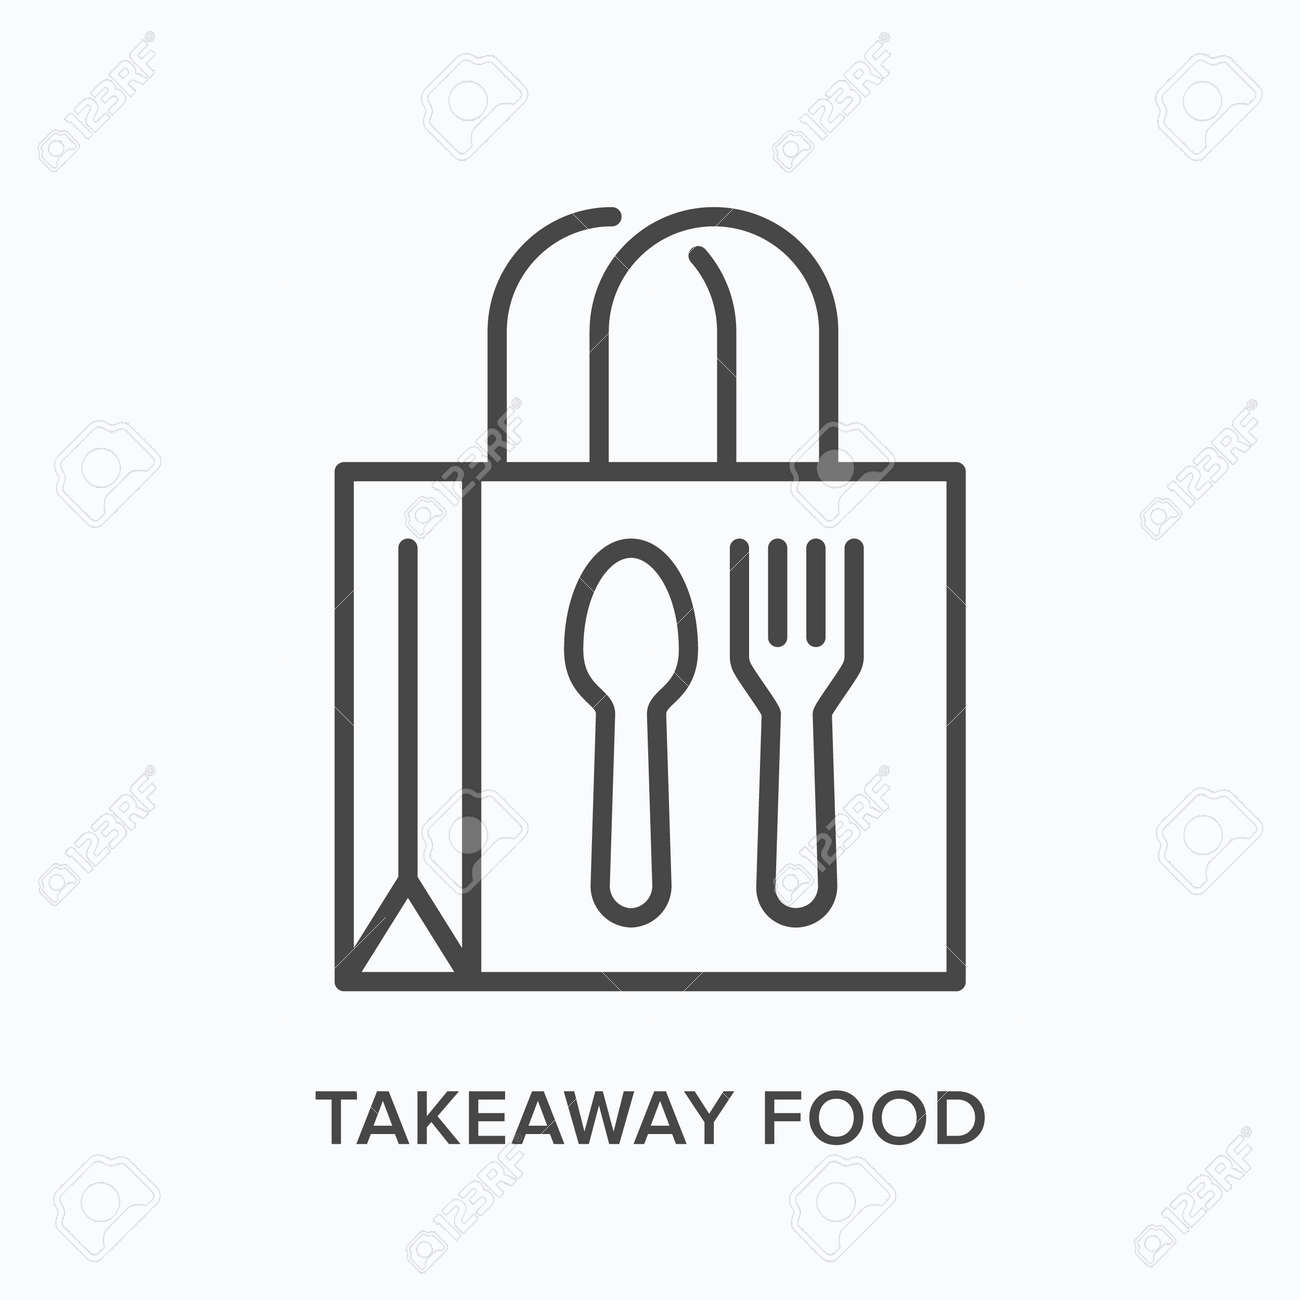 Ready food delivery line icon. Vector outline illustration of takeaway lunch service. Daily meal in papr bag with fork and spoon pictorgam - 149456984